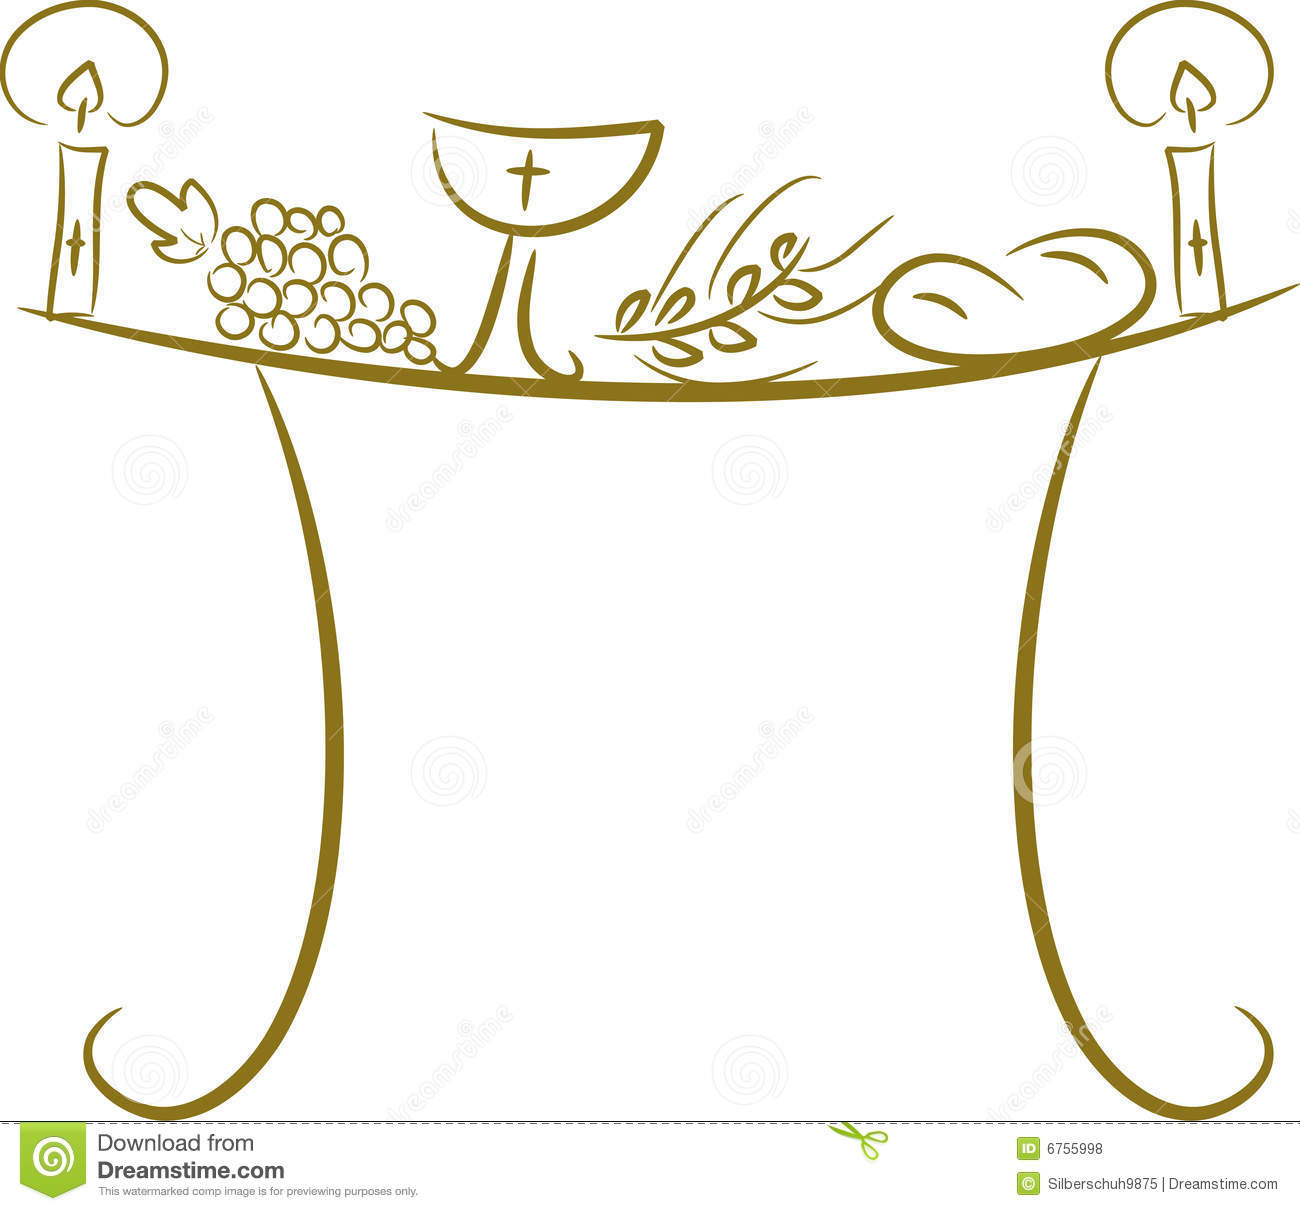 ... candle (light), chalice, grapes (wine), ear, cross and bread